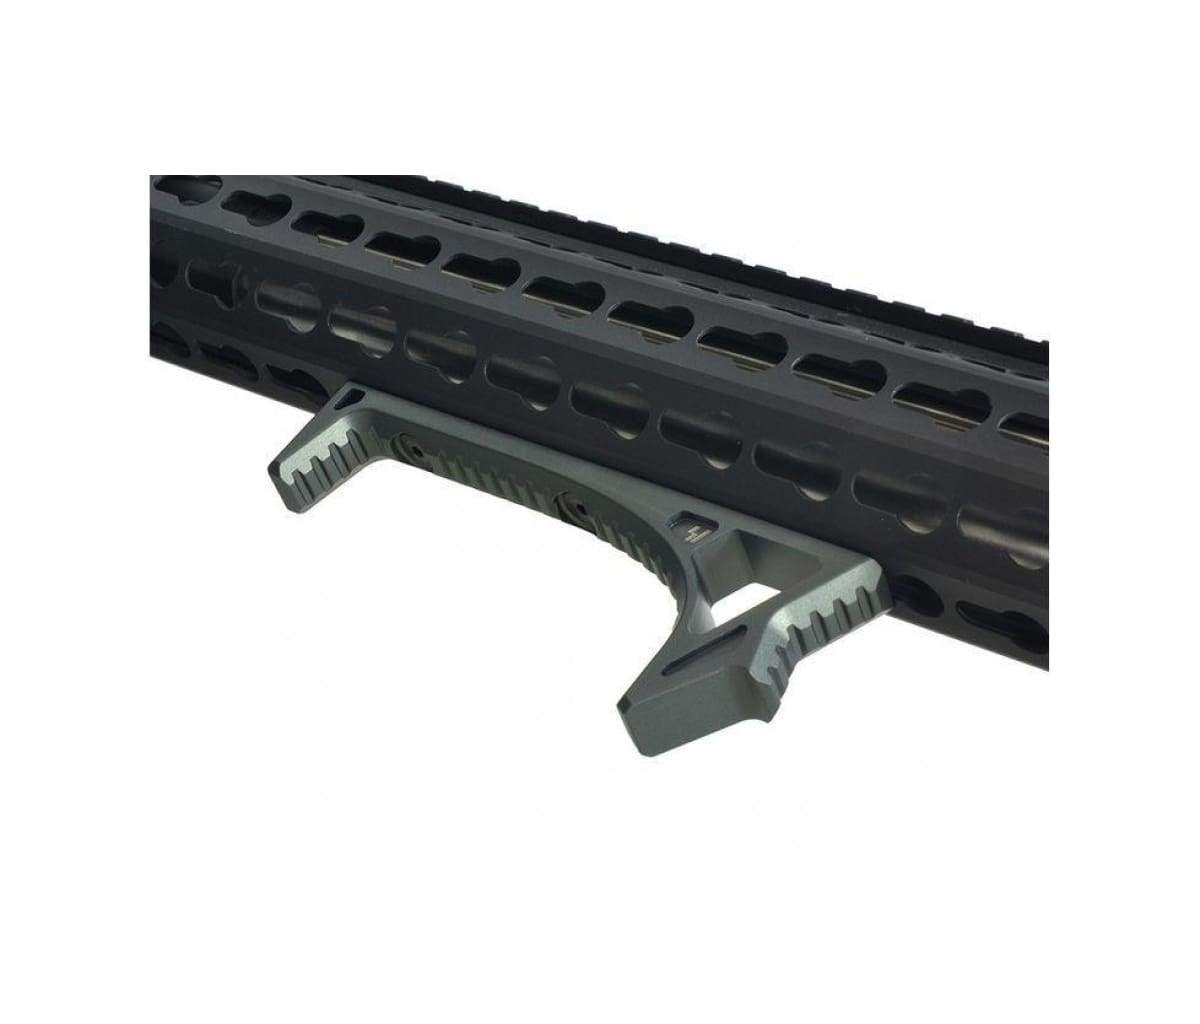 Front Grip LINK Curved Angled Foregrip Metal For KeyMod M-lok Handguard Rail